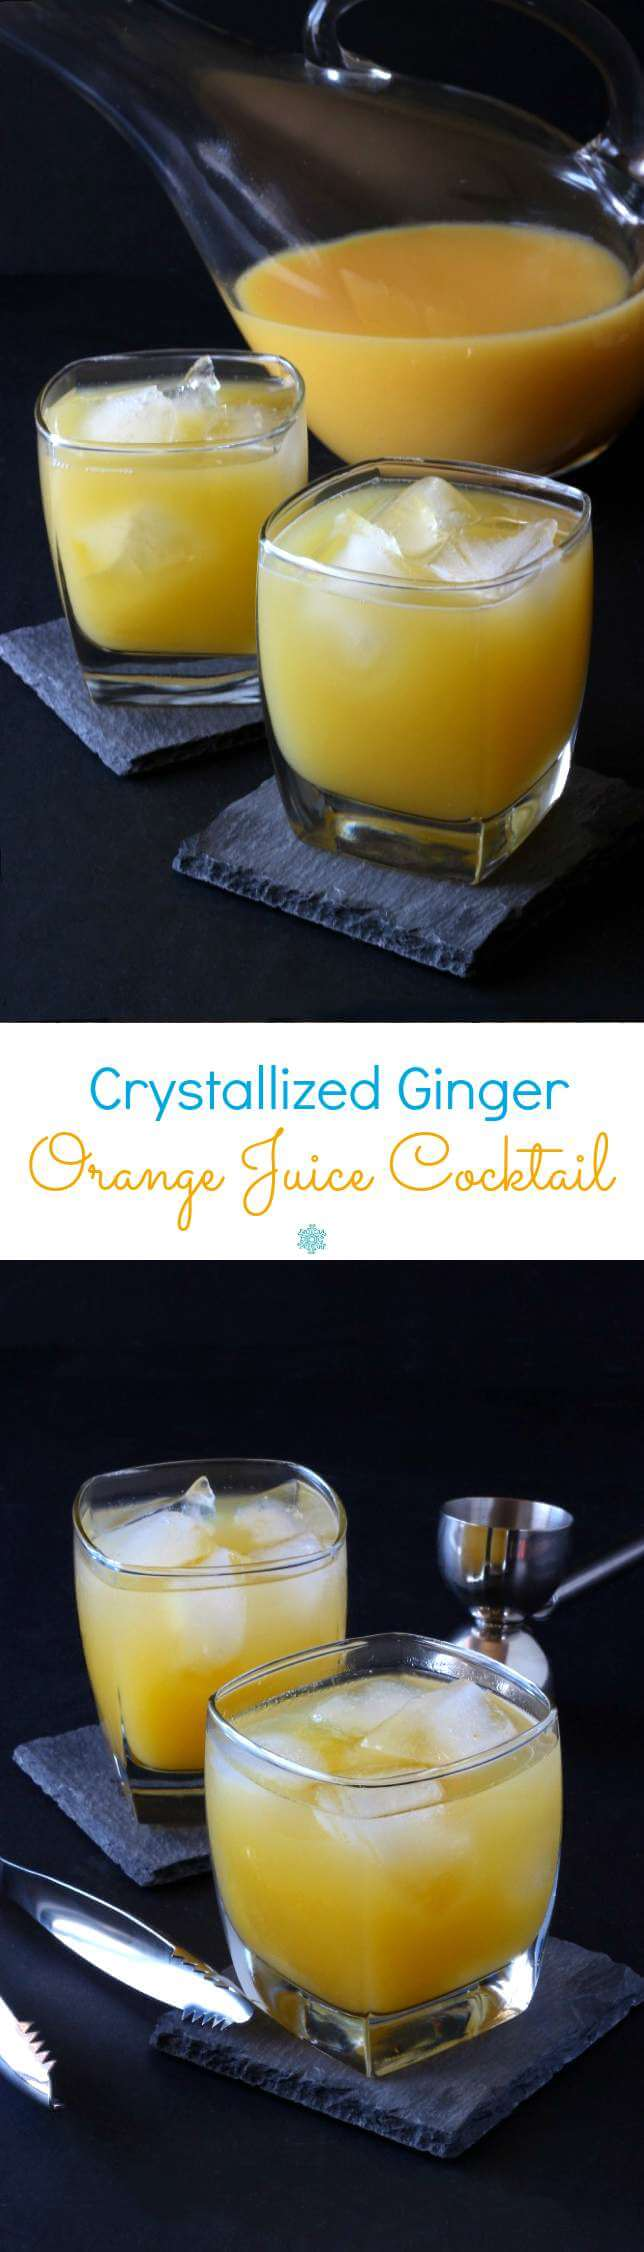 Crystallized Ginger Orange Juice Cocktail is a spicy sweet concoction that will have you breathing a sigh of comfort. Fruity and refreshing.